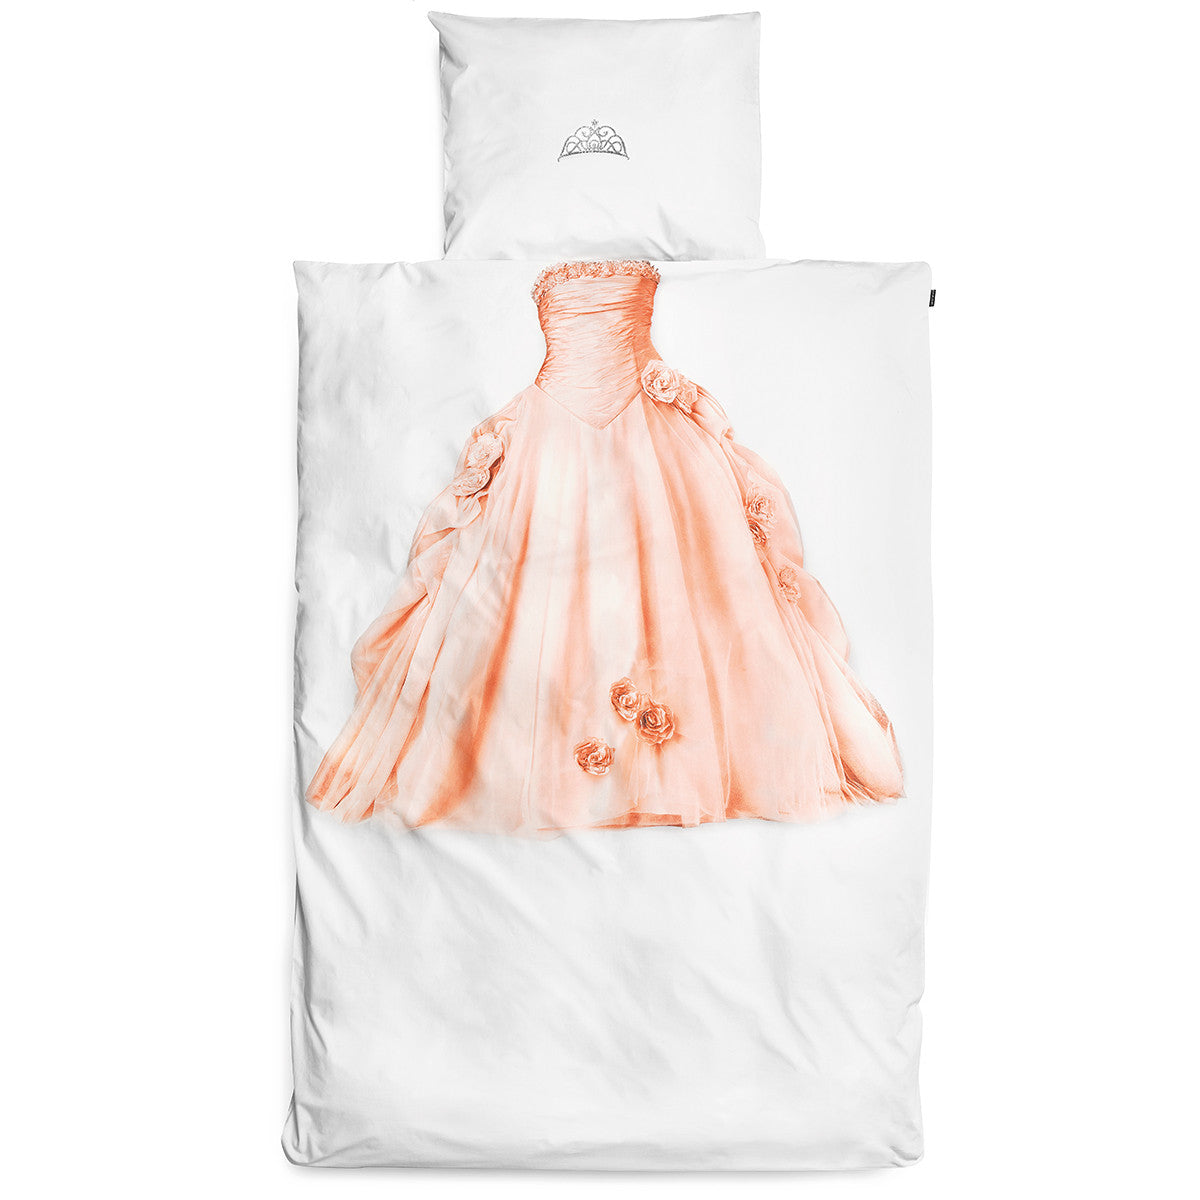 Quilt Cover Set Princess Snurk